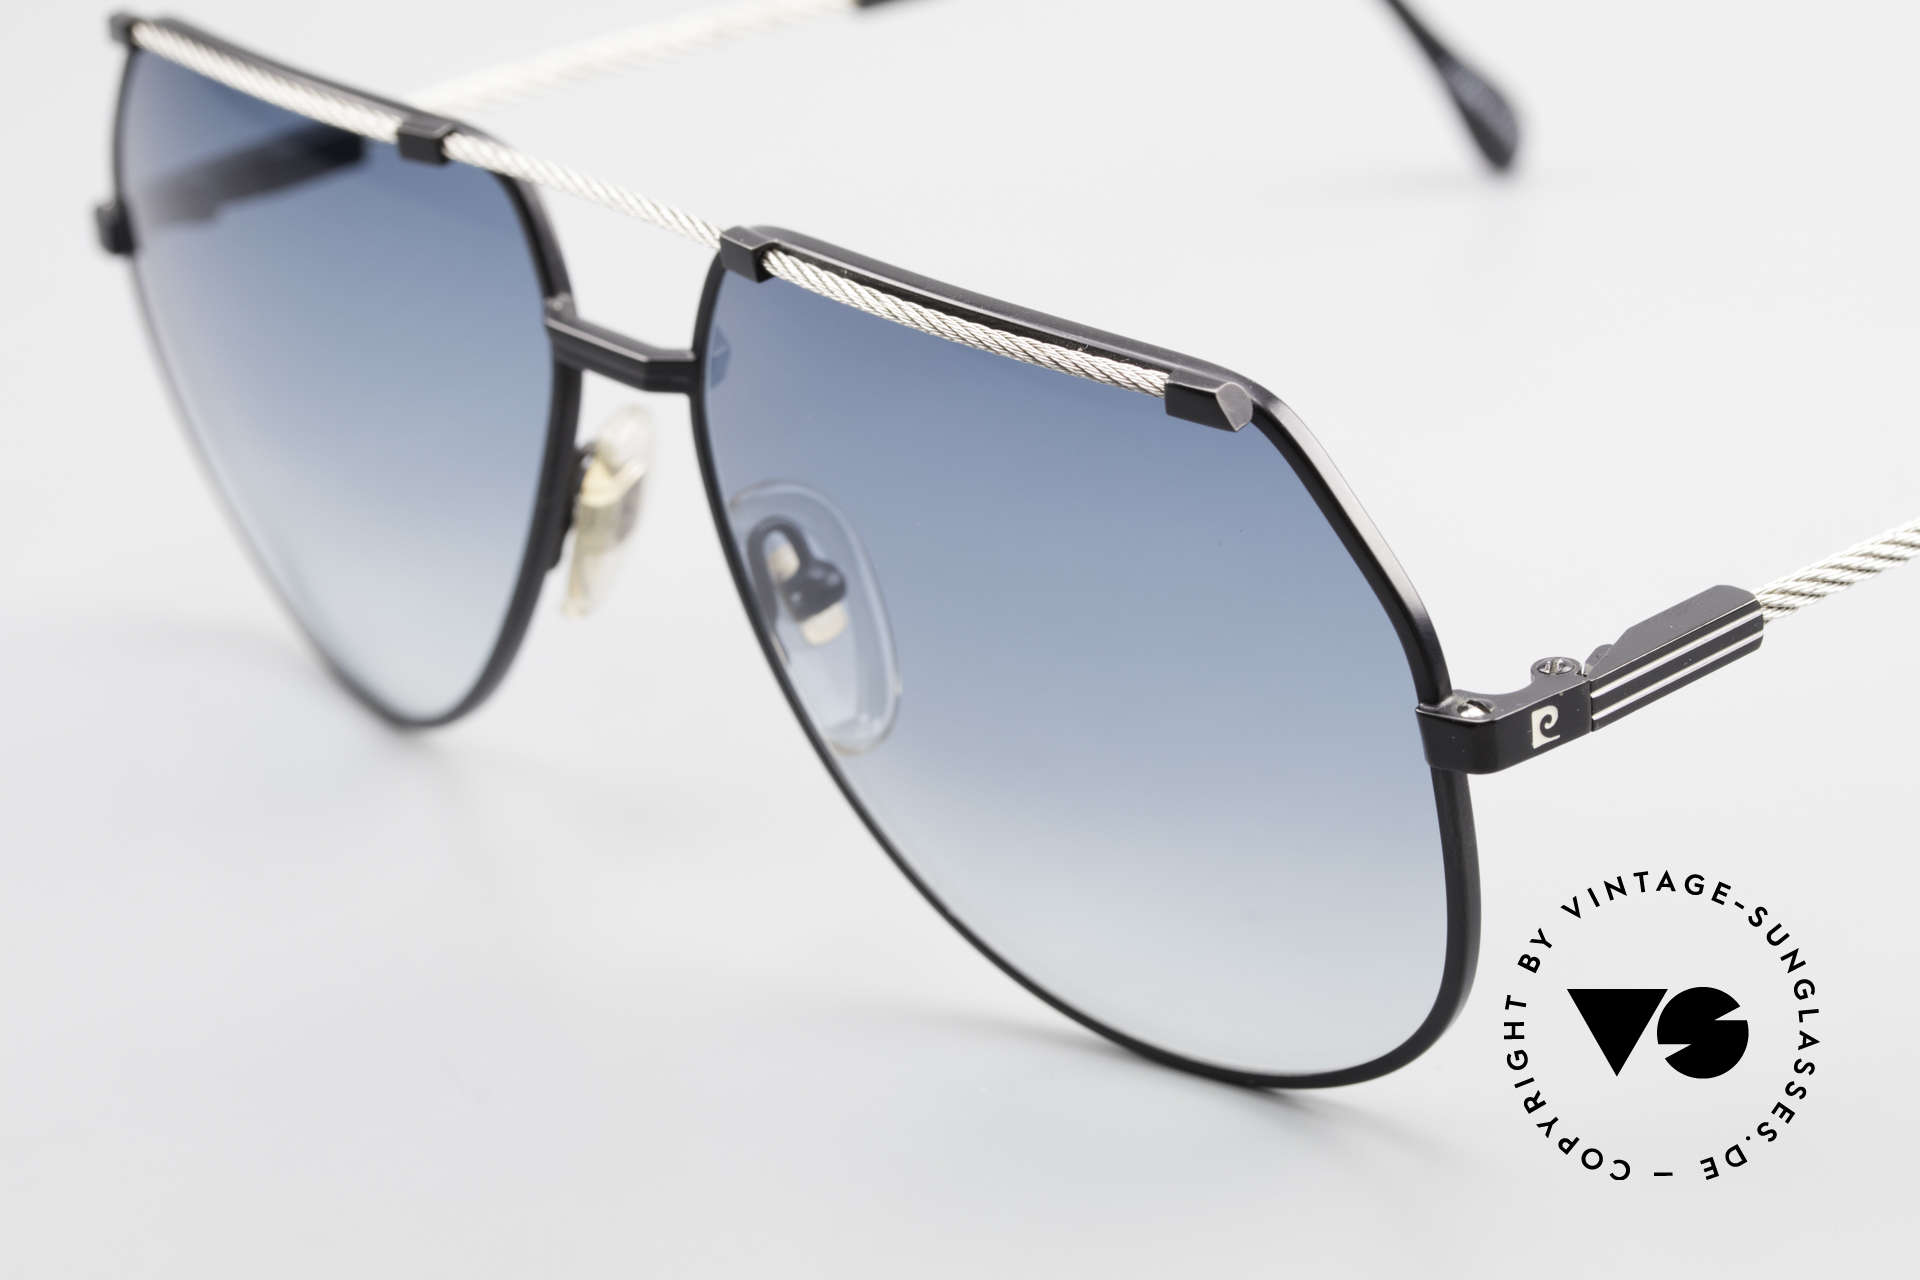 Pierre Cardin CP805 Old Vintage Sailing 80's Shades, high-end quality & wearing comfort (You must feel it!), Made for Men